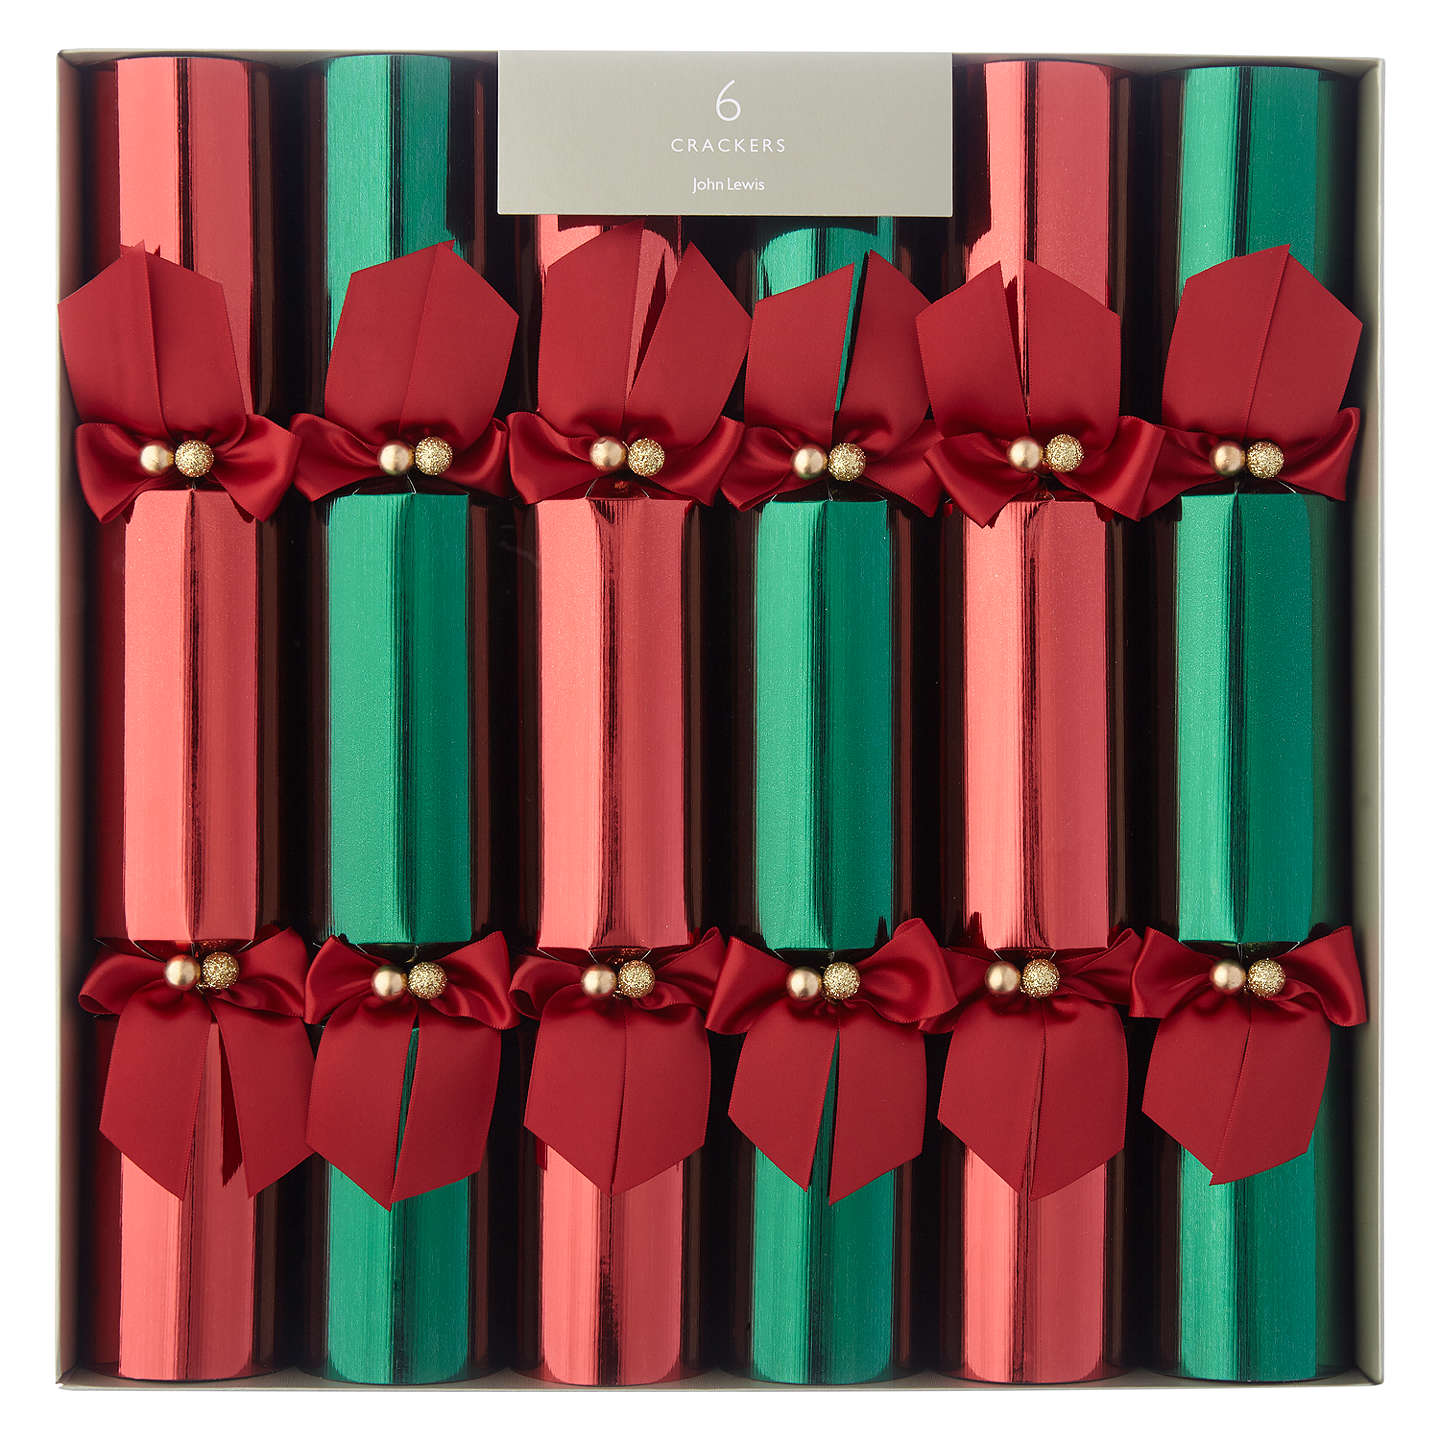 John lewis premium christmas crackers pack of 6 redgreen at john buyjohn lewis premium christmas crackers pack of 6 redgreen online at johnlewis solutioingenieria Gallery